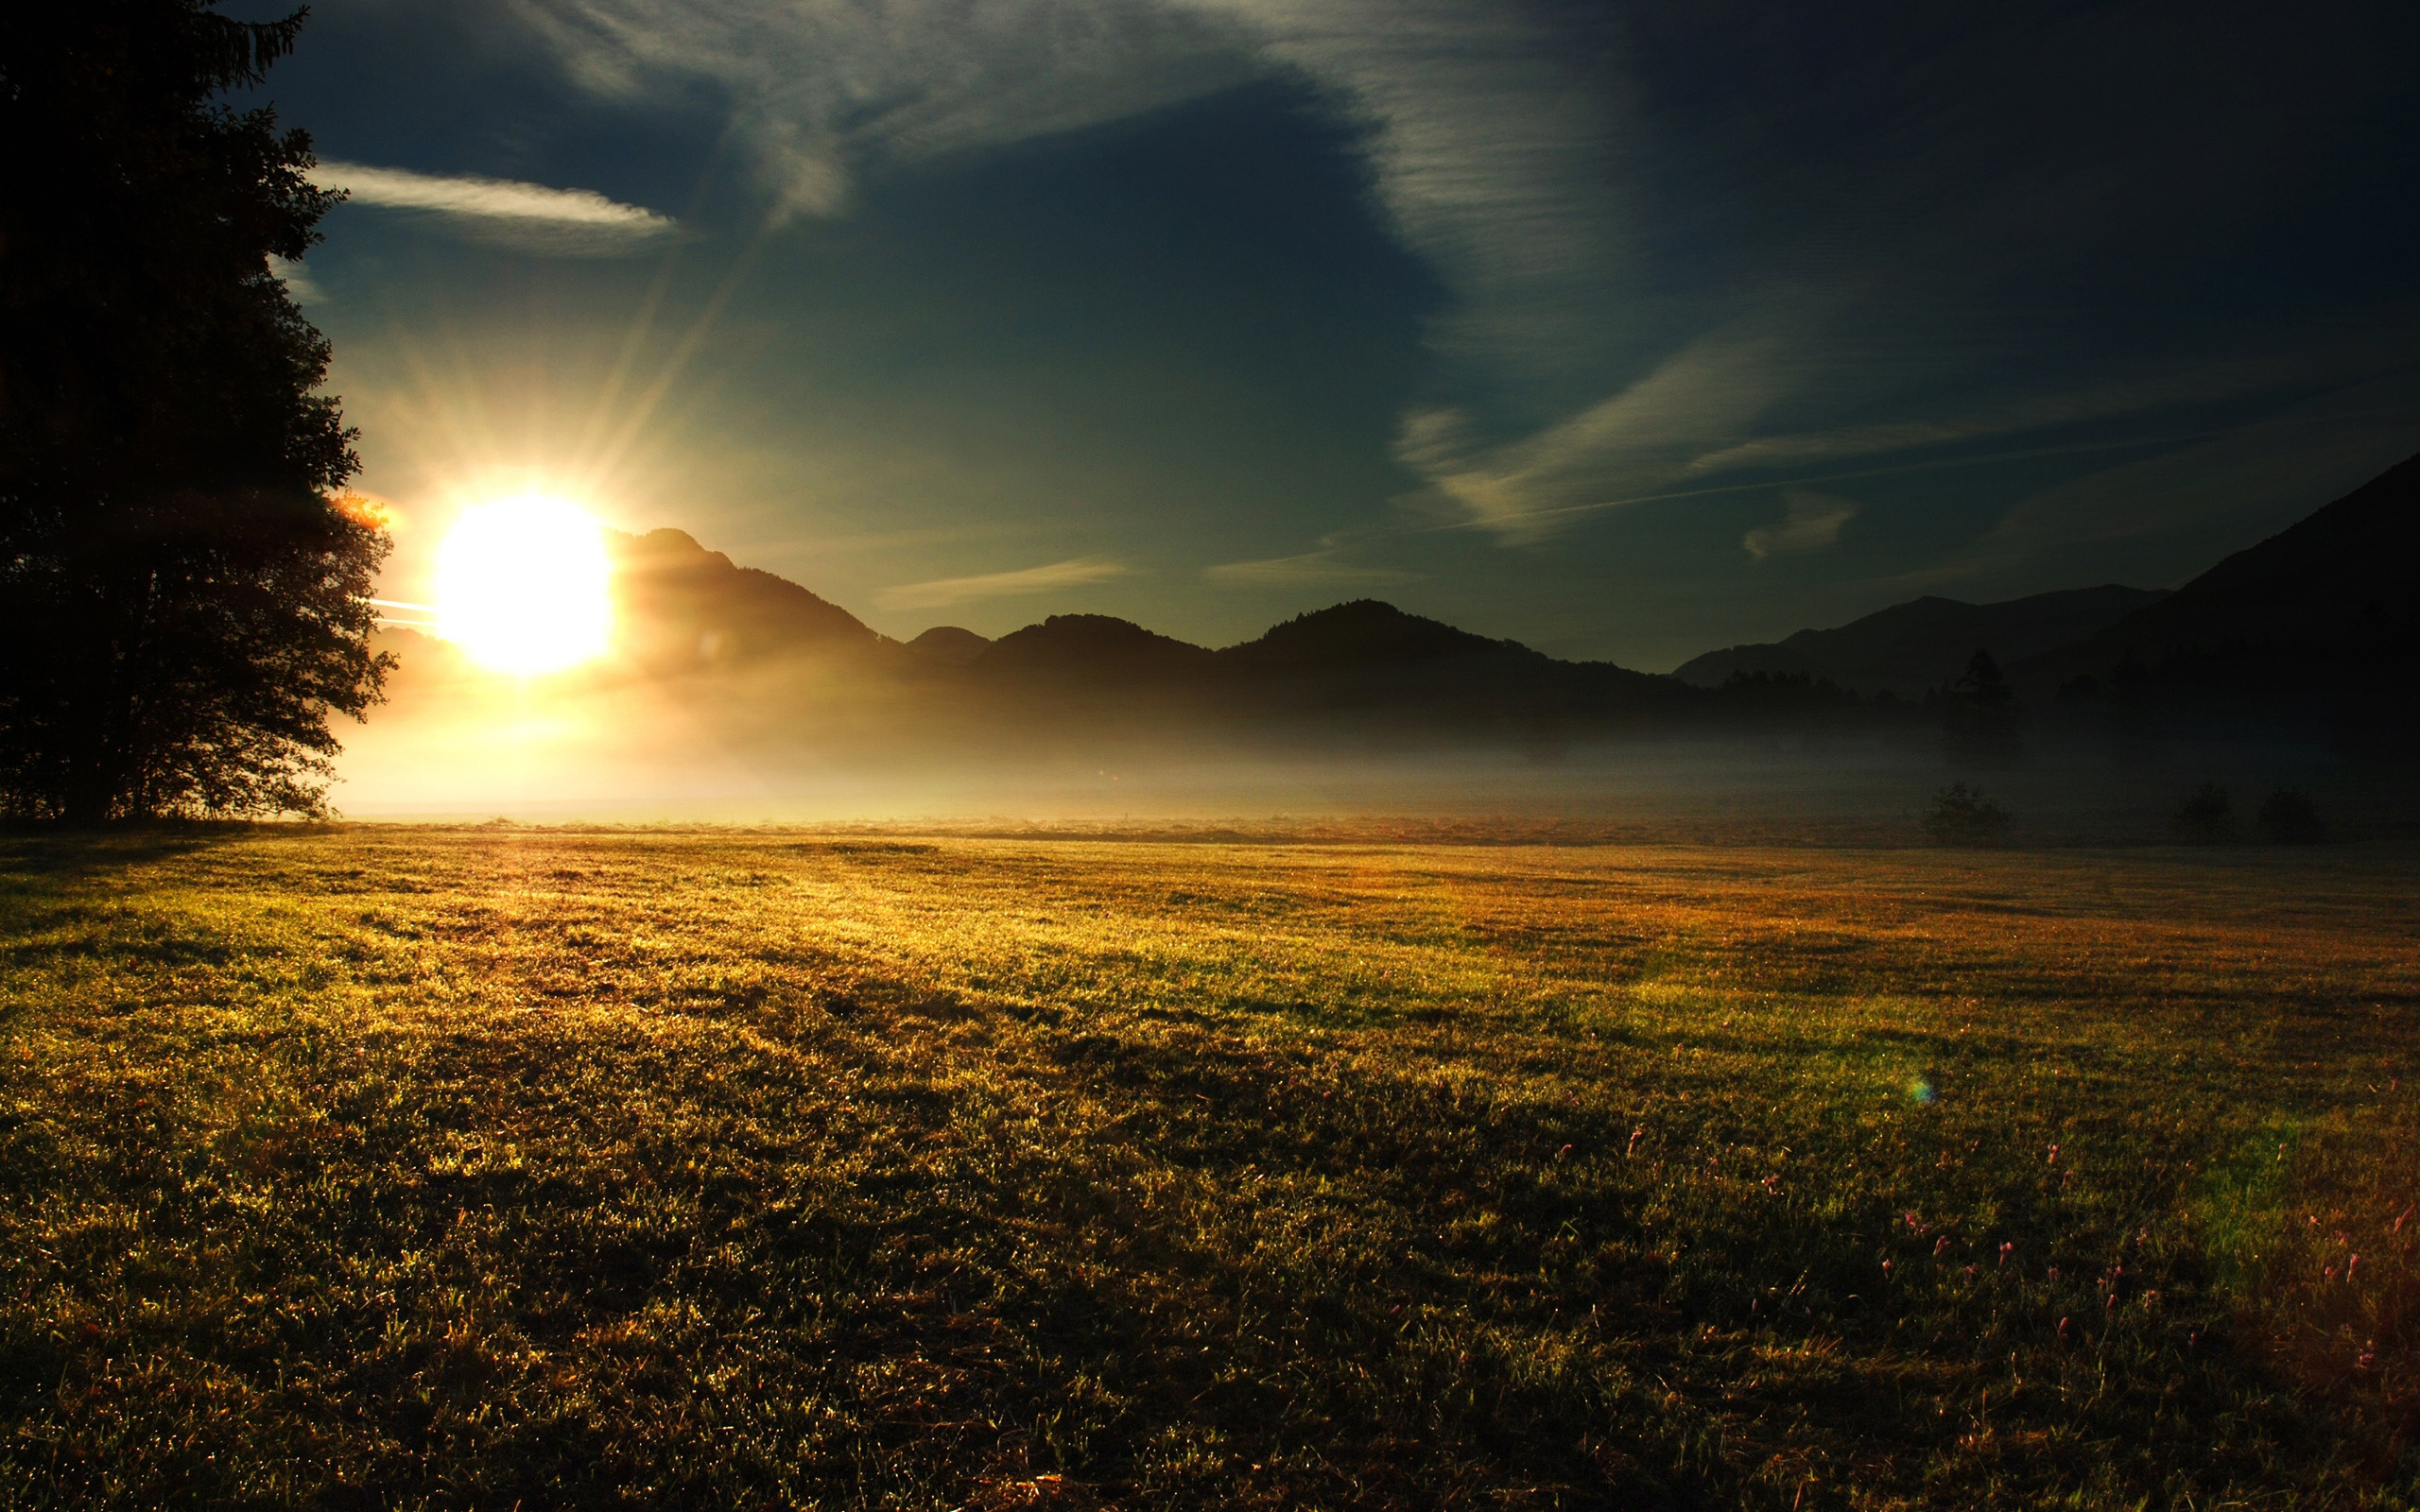 sunrise pictures free - HD1600×1000